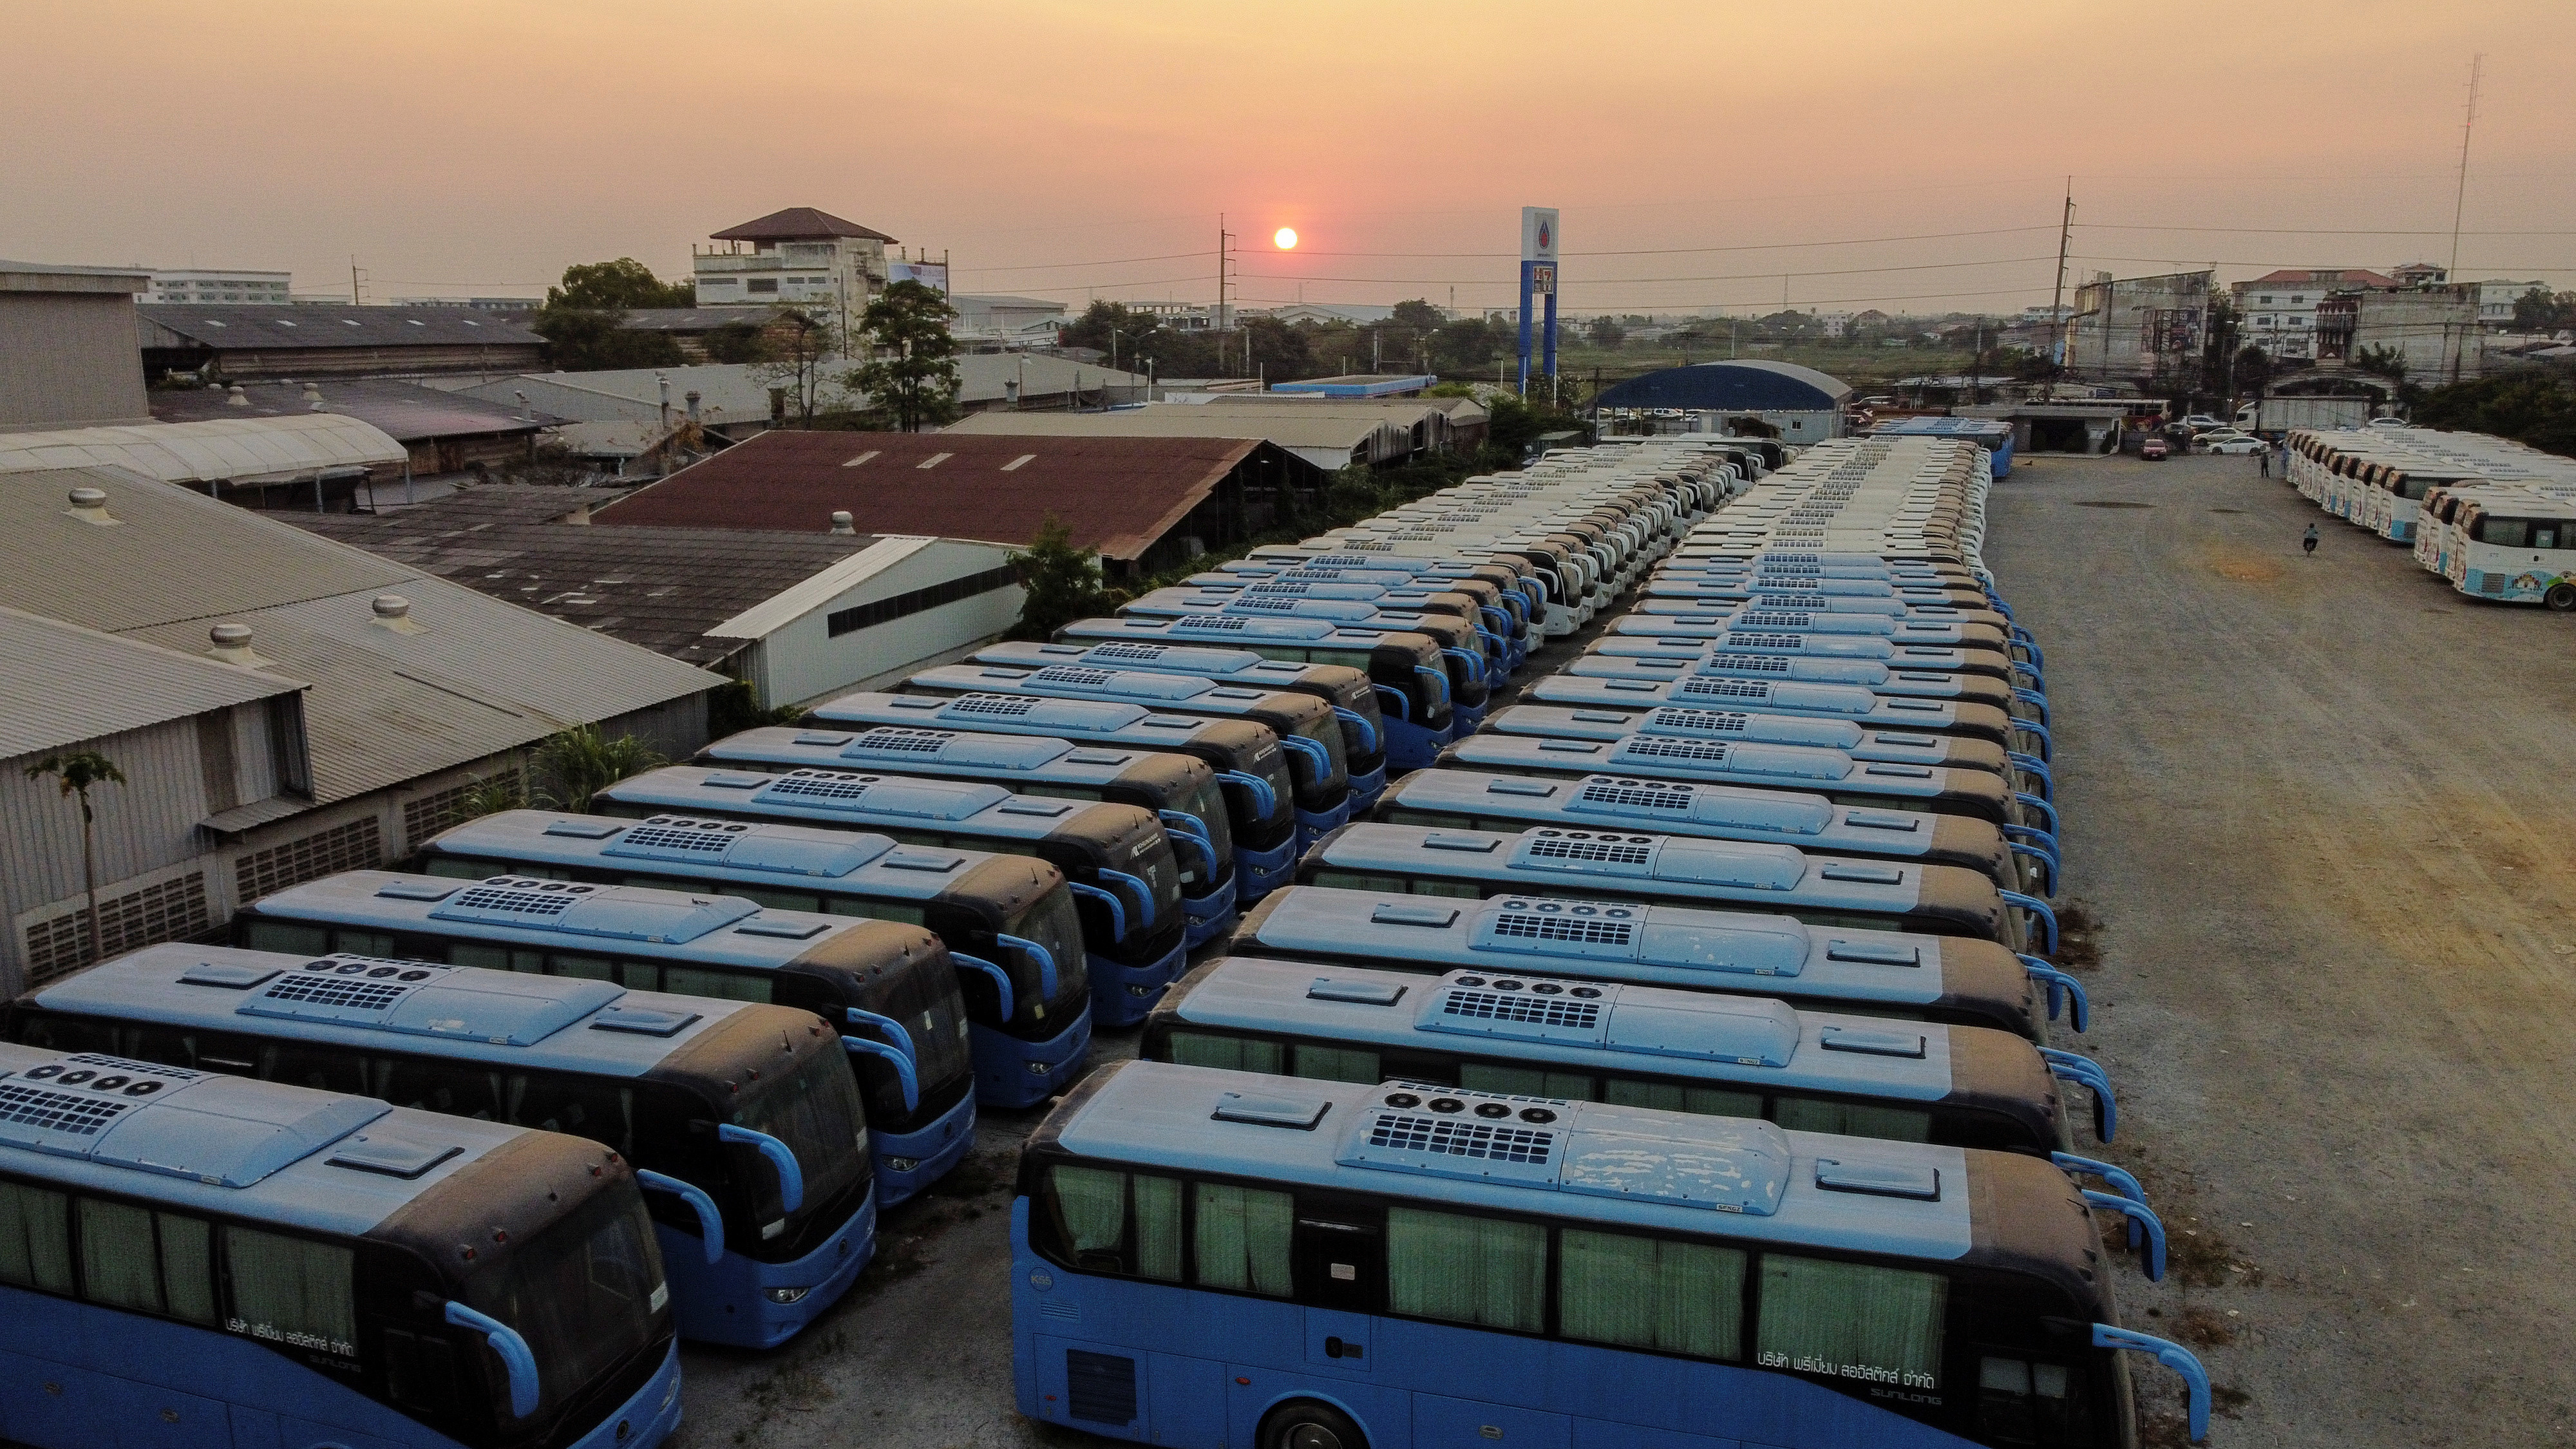 Buses that used to transport Chinese tourists around Thailand are seen idle due to travel bans and border closures from the global coronavirus disease (COVID-19) outbreak in a parking lot near Suvarnabhumi airport in Bangkok, Thailand February 5, 2021. Picture taken with a drone on February 5, 2021.